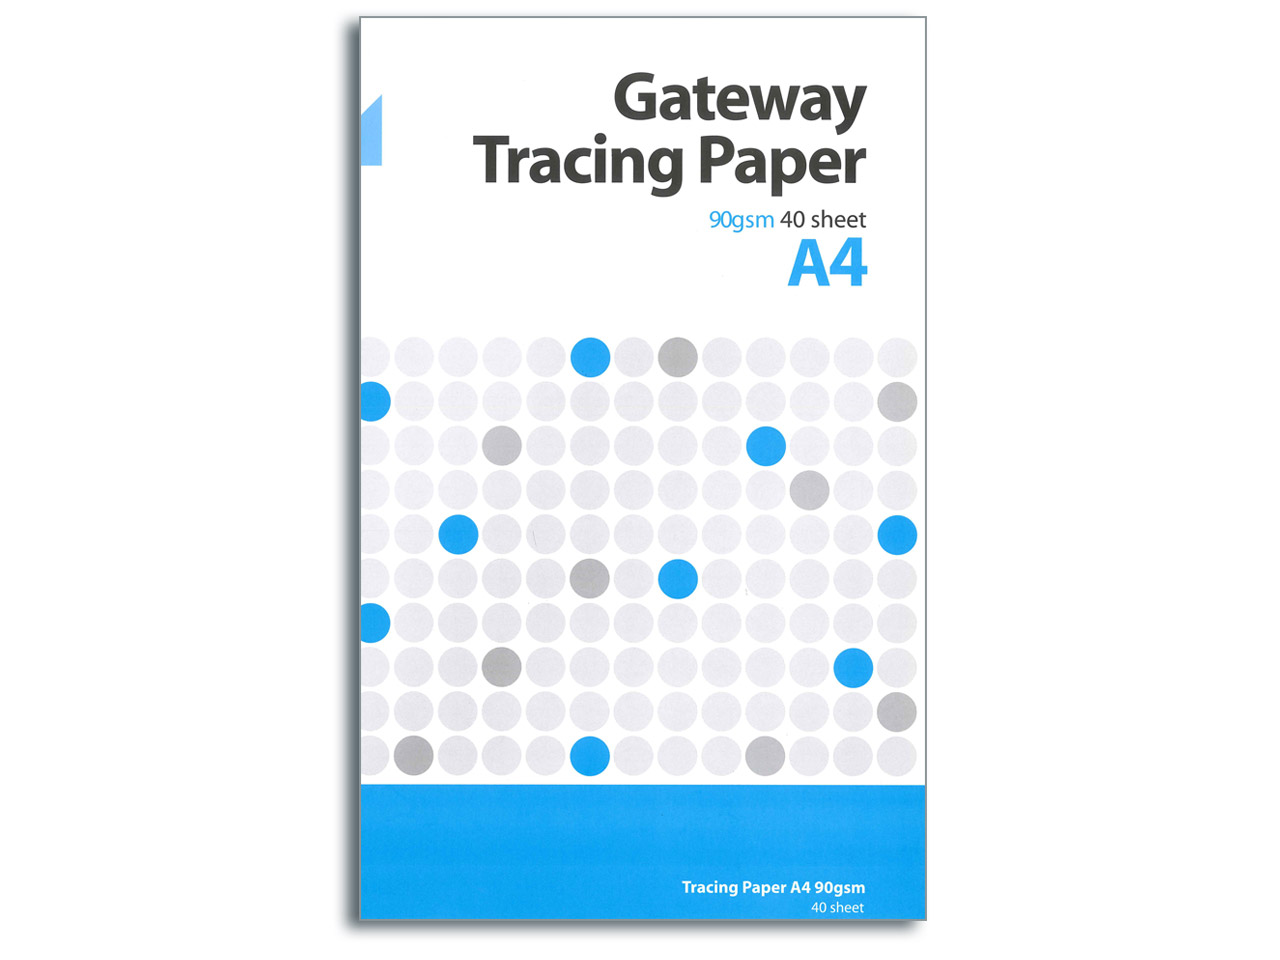 Gateway Natural Tracing Paper, A4  Pad, 40 Sheets, 90gsm